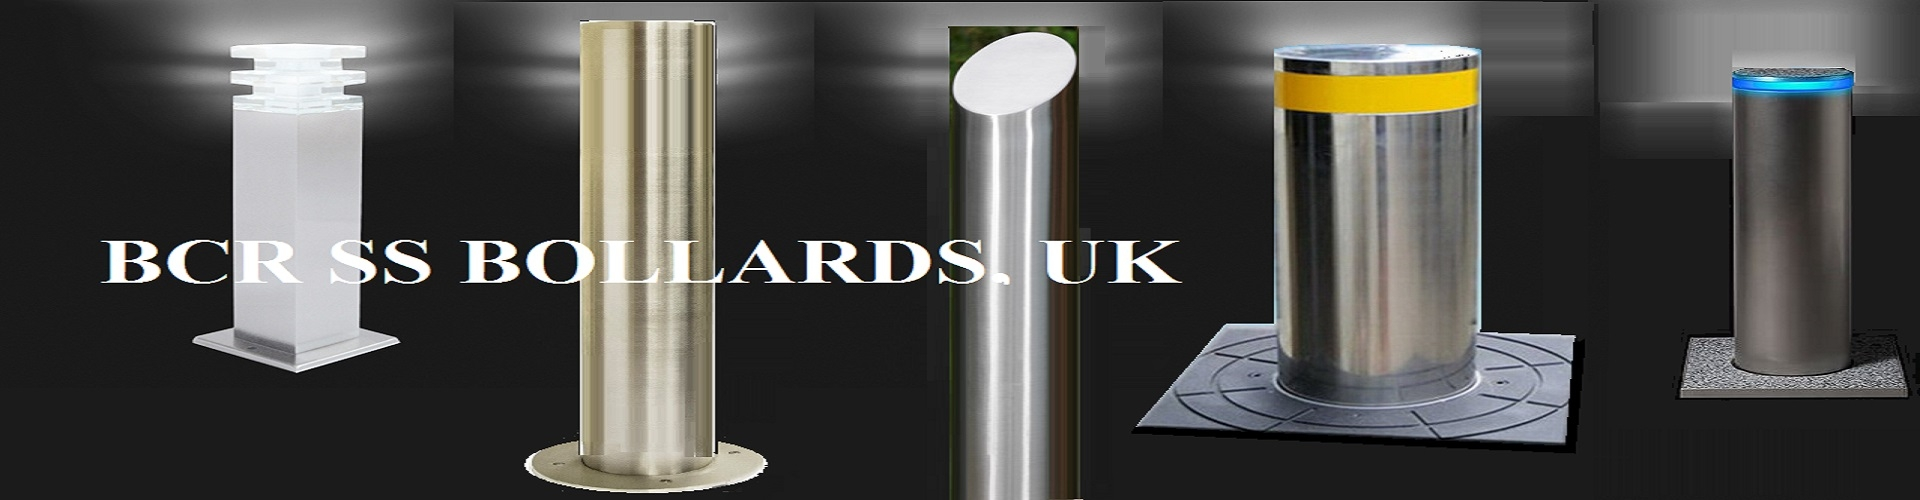 BCR Ltd. UK  SS BOLLARD WE CARE FOR YOUR SAFETY